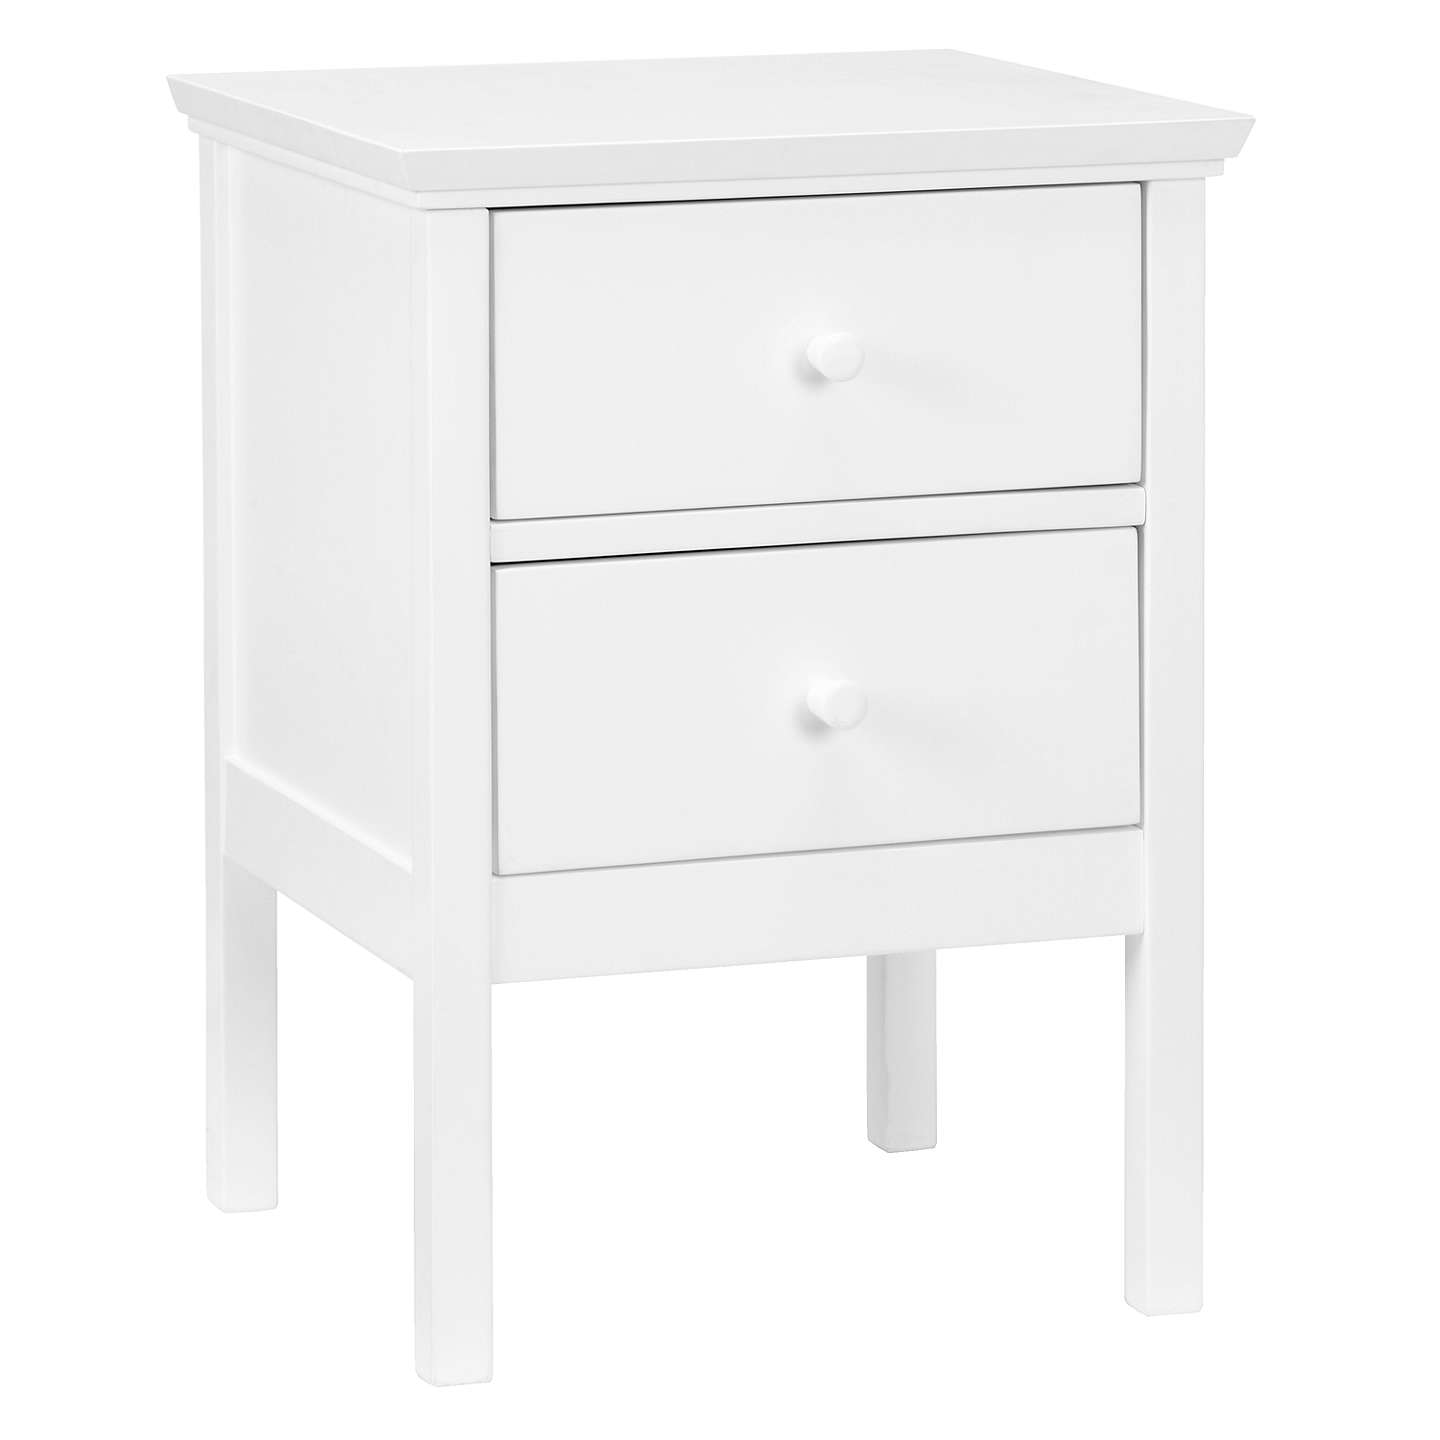 table johnlewis white bedside main pdp rsp lewis at drawer john cabinet com buyjohn online wilton